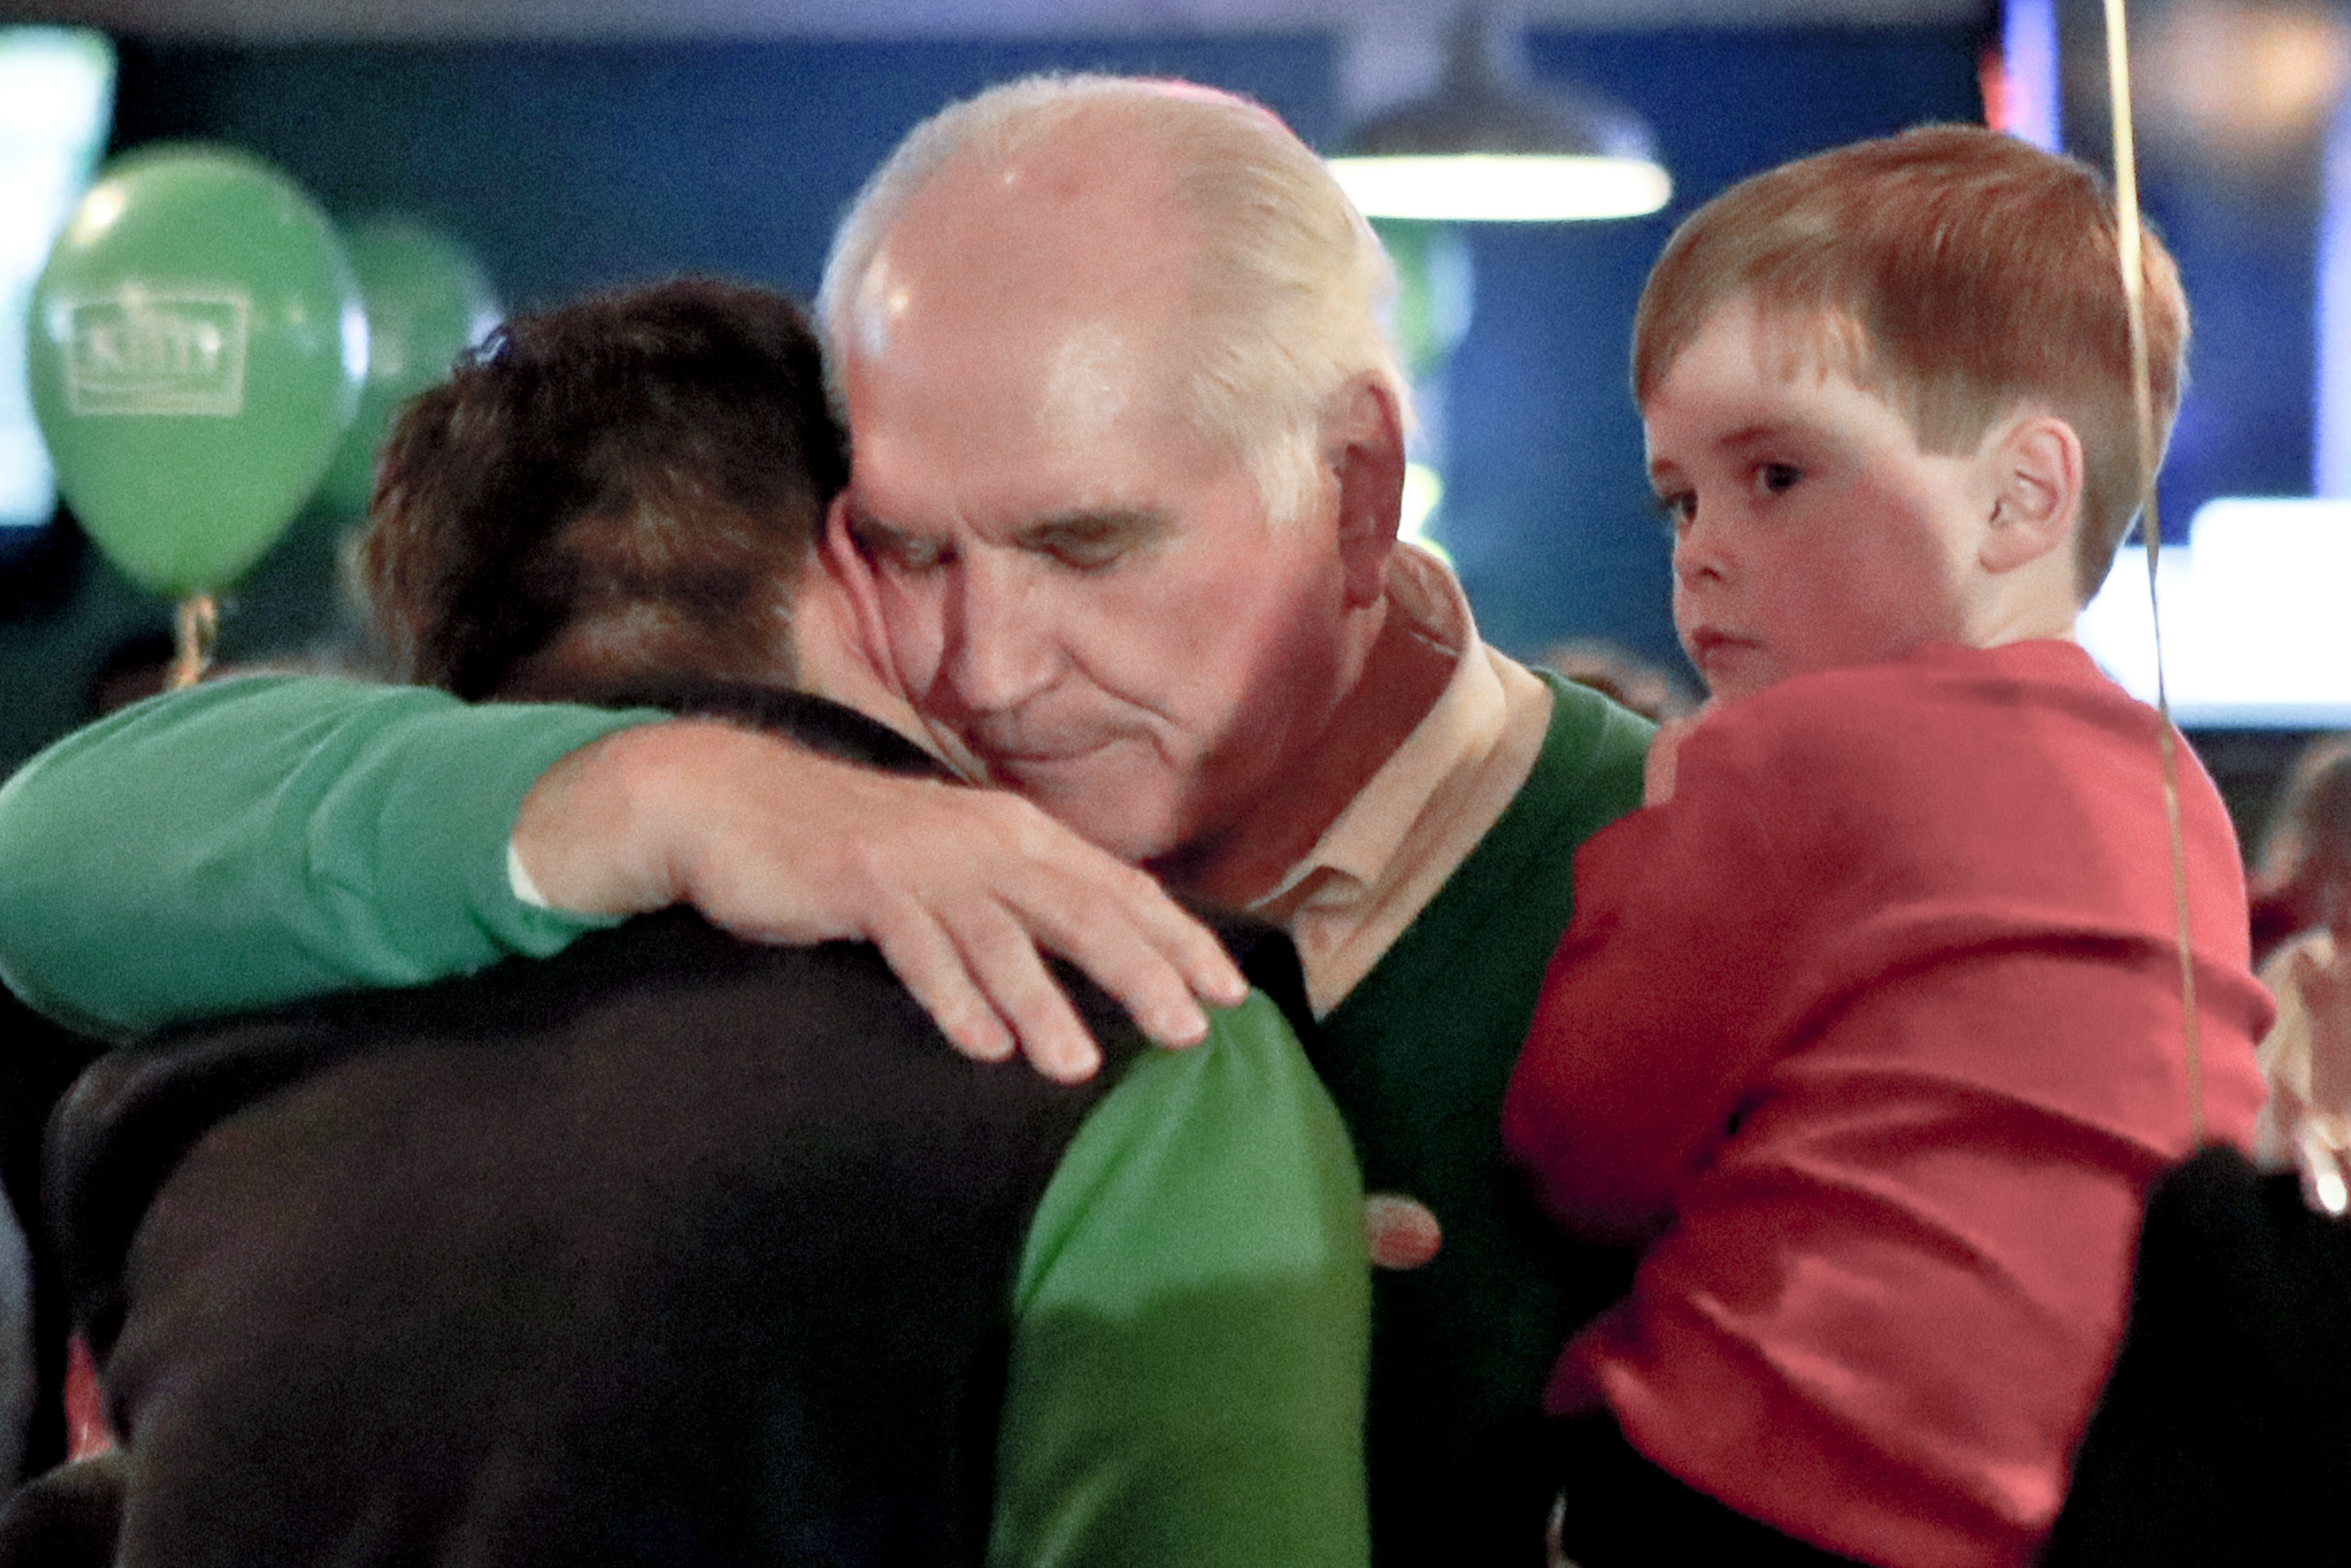 U.S. Rep. Mike Kelly, center, holds his grandson Isaac Kelly, 4, as he hugs his chief of staff, Matt Stroia, left, after hearing his opponent had conceded the election on Tuesday, Nov. 6, 2018 in Butler, Pa. Kelly faced democratic challenger Ron DiNicola in the newly redrawn 16th district in Pennsylvania. (AP Photo/Keith Srakocic)